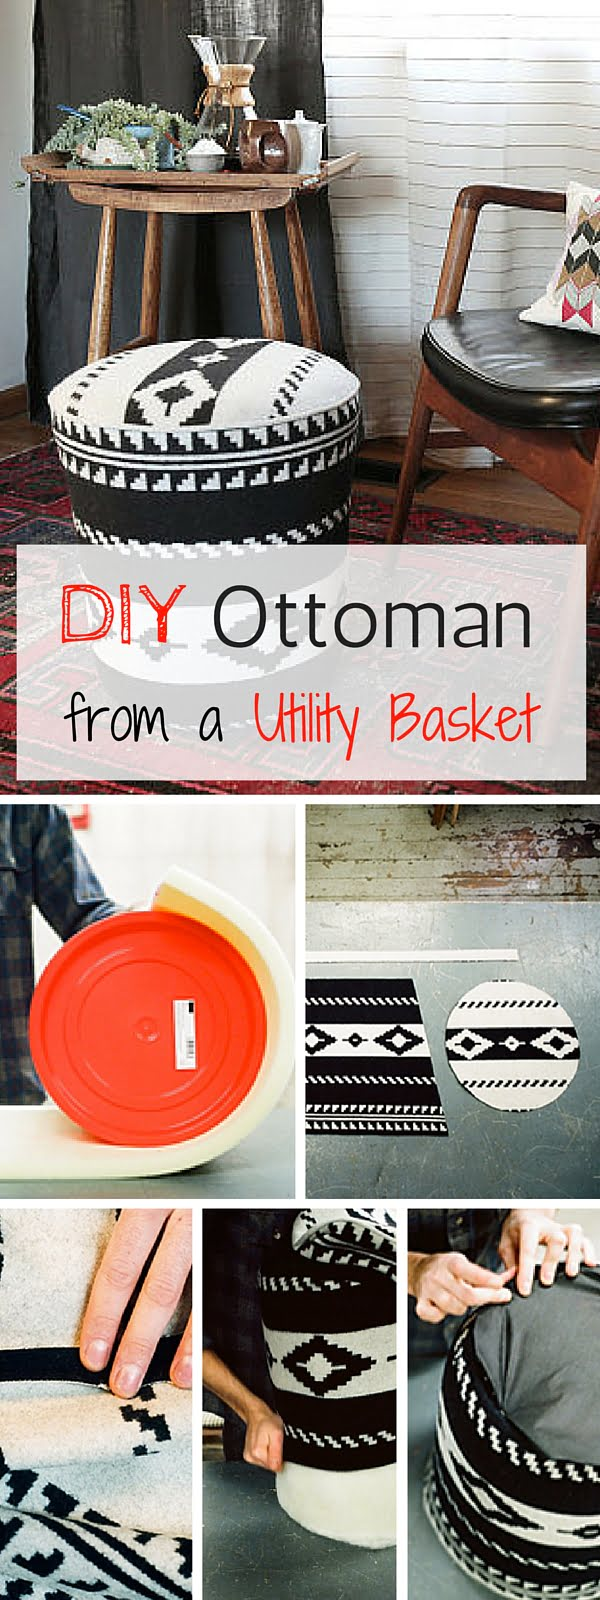 Check out the tutorial: #Ottoman from an Utility Basket #crafts #homedecor